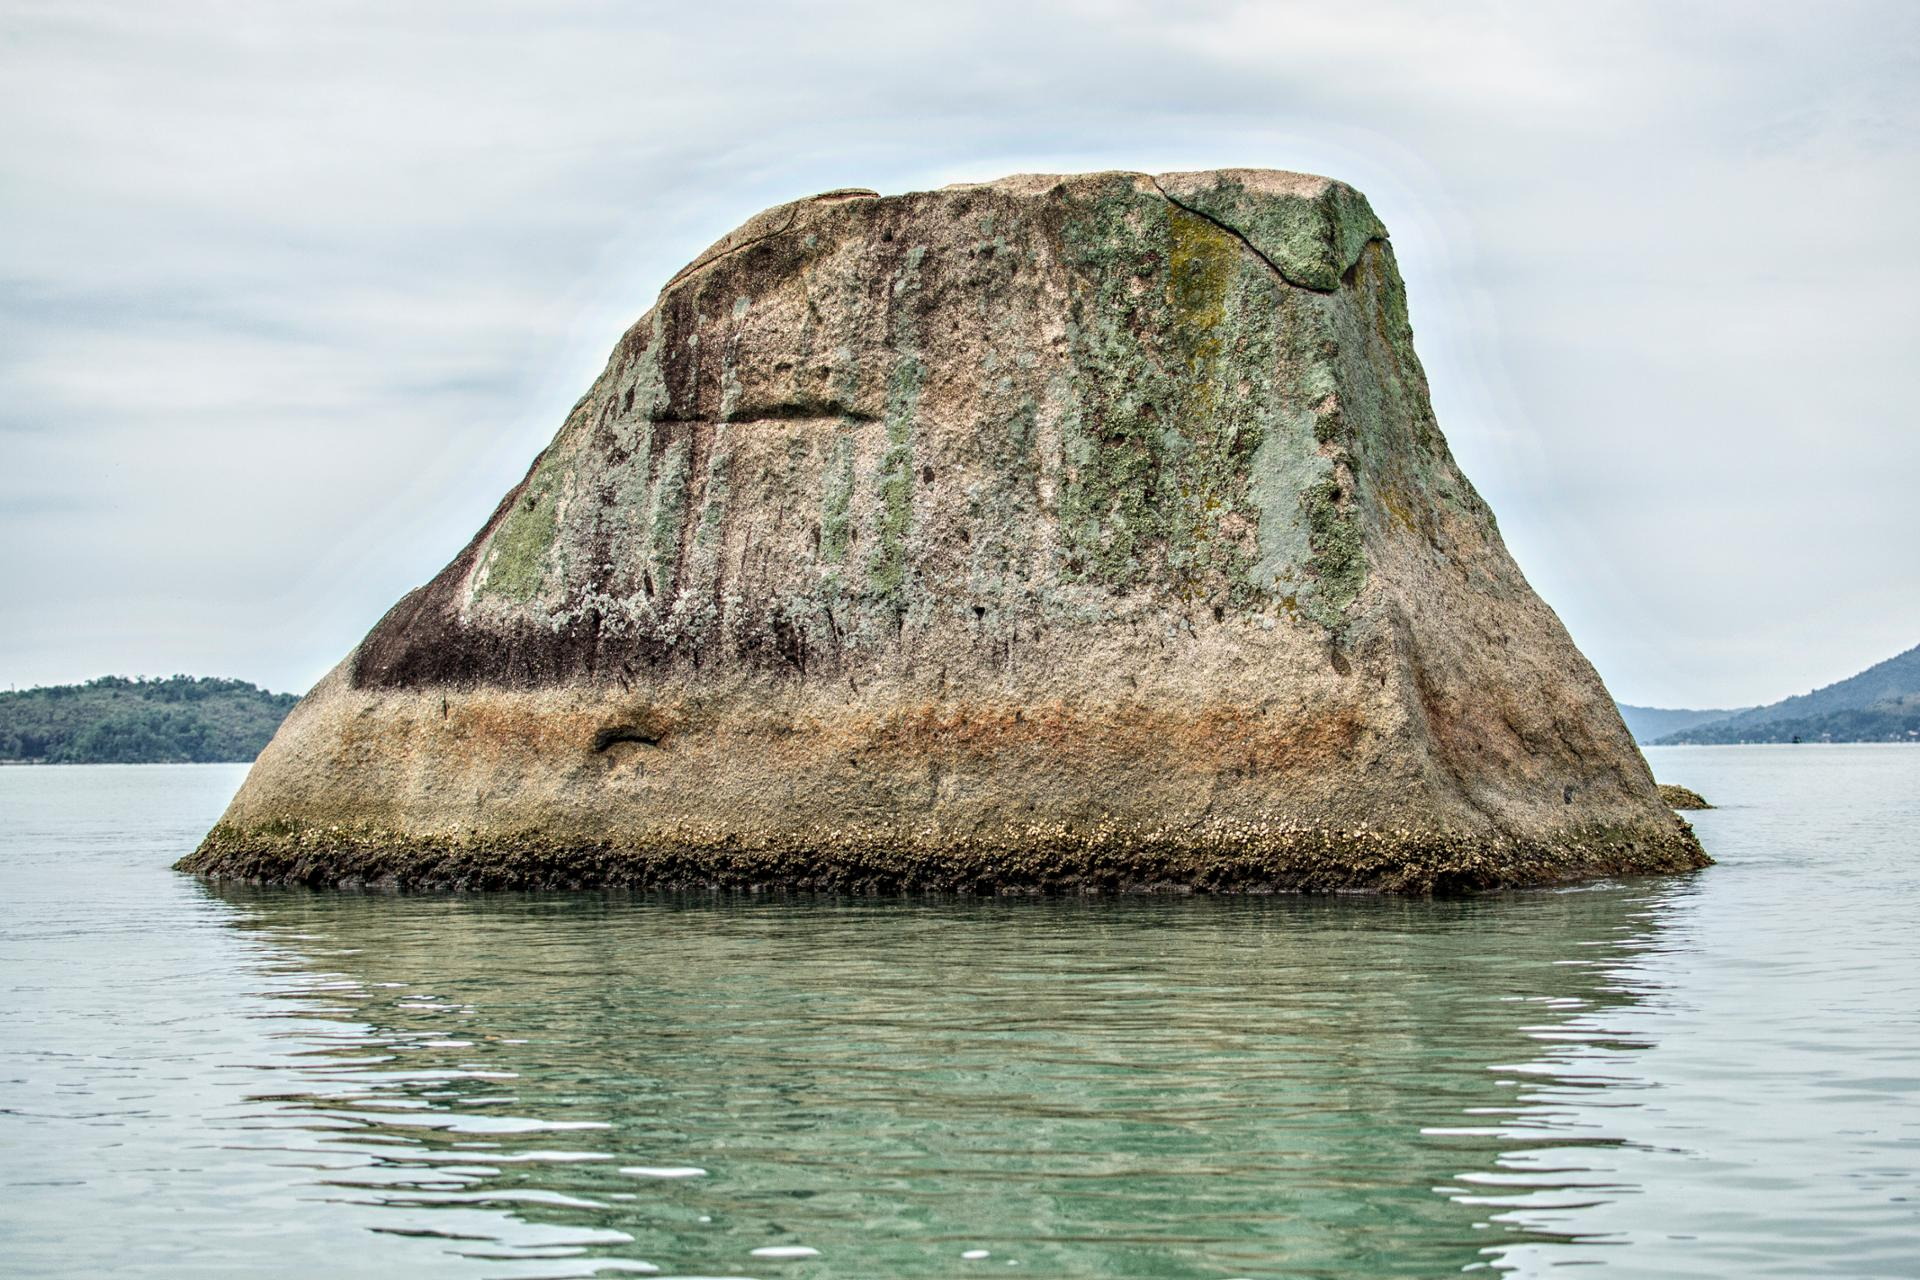 I wish I was a rock in the sea